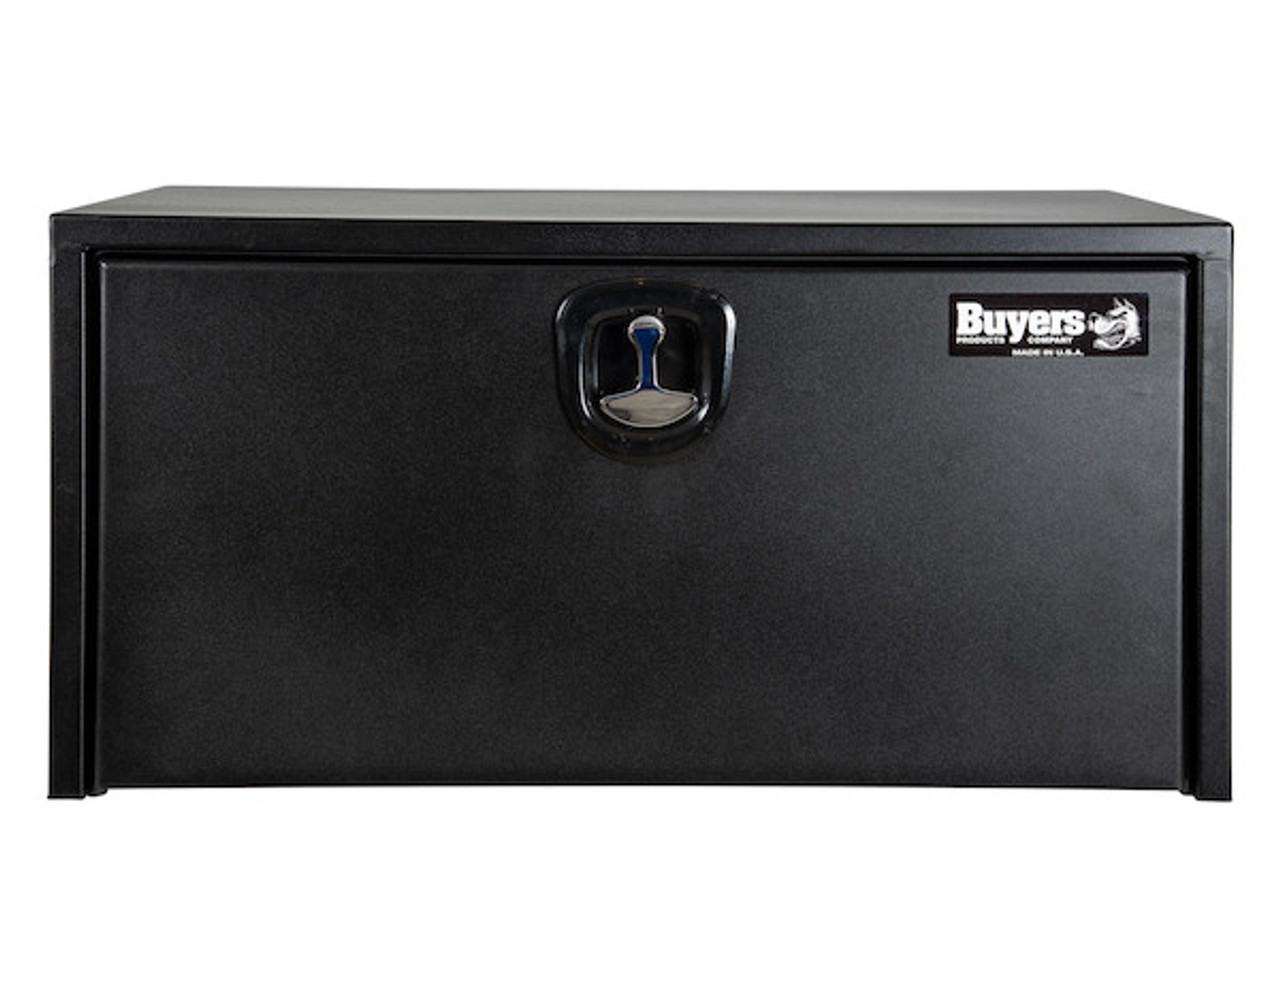 "1734505 BUYERS PRODUCTS TEXTURED MATTE BLACK STEEL UNDERBODY TRUCK TOOLBOX WITH 3-POINT LATCH 24""Hx24""Dx36""W  Picture # 2"